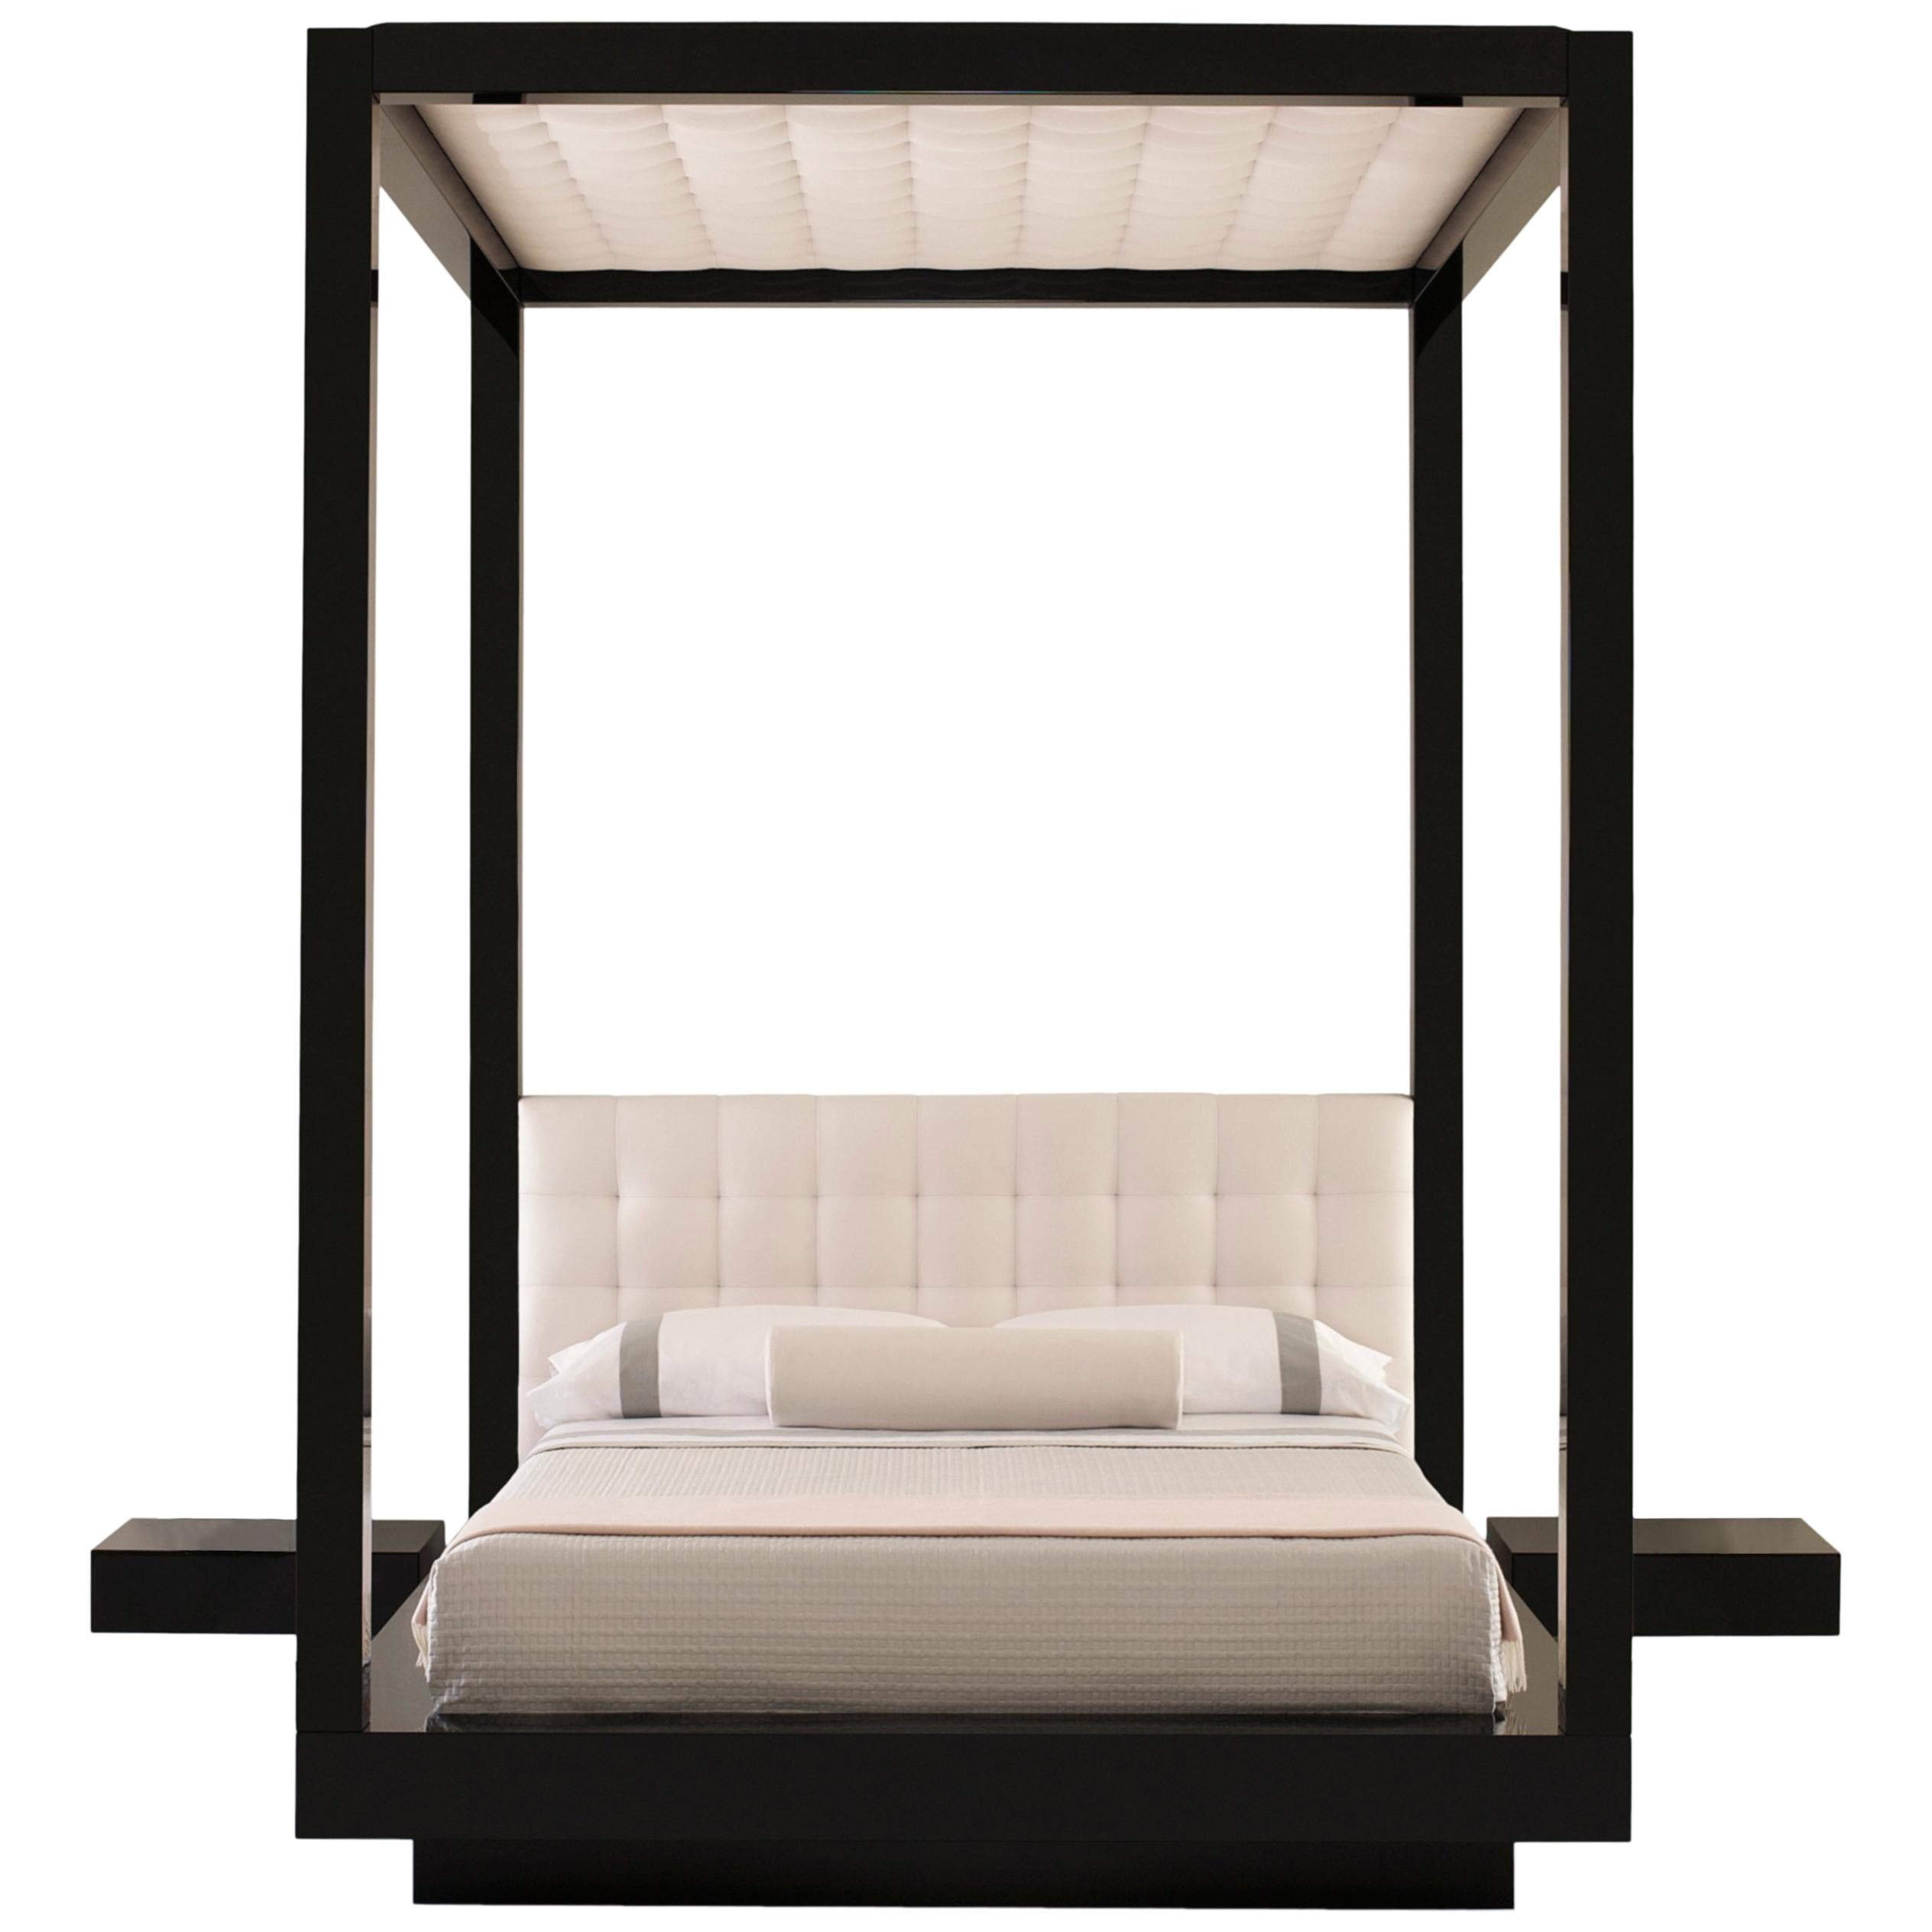 Plaza Bed Queen Tufted Canopy and headboard, Black lacquer